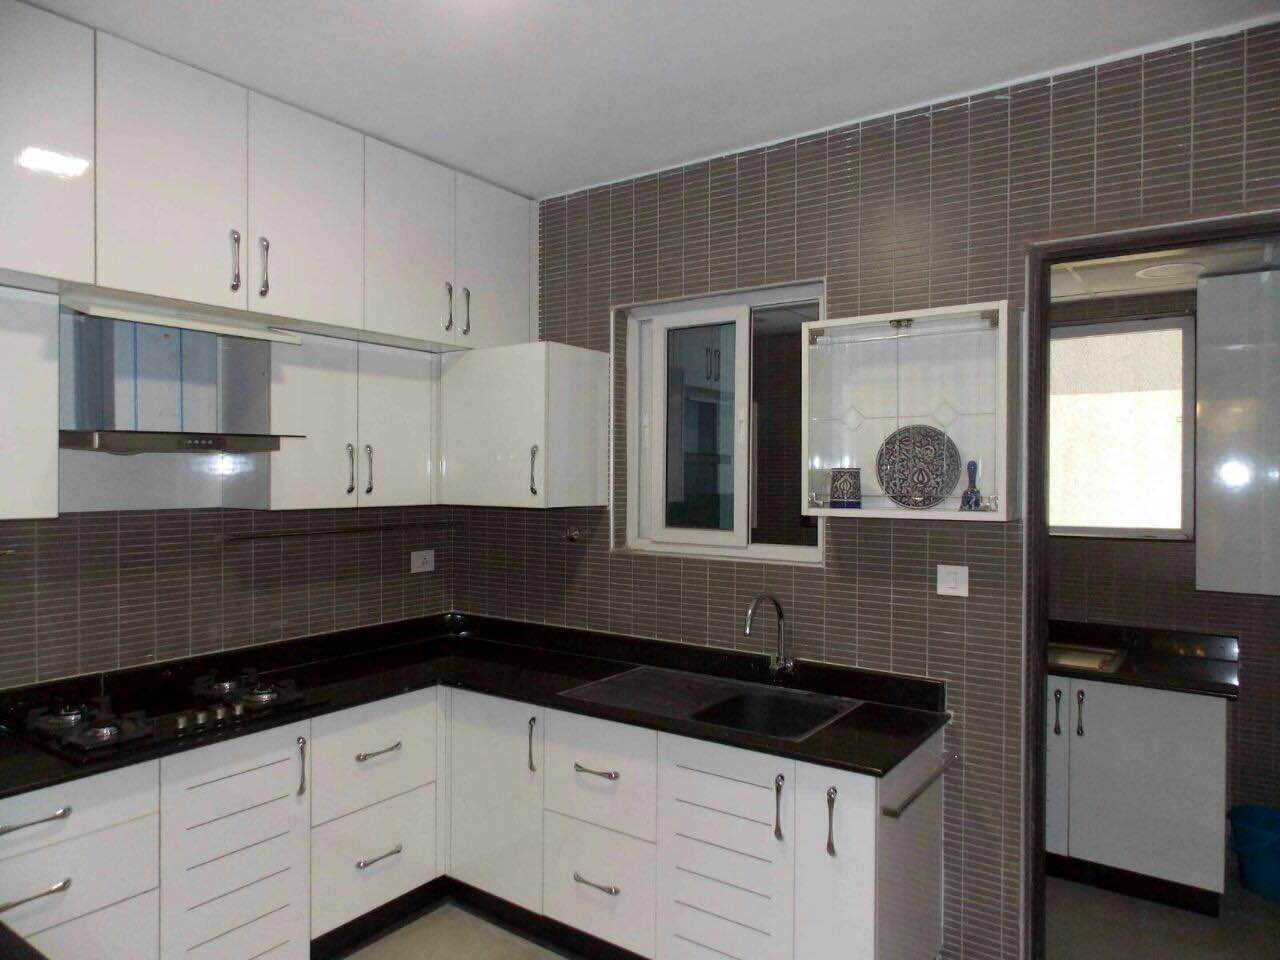 Modular kitchen in black and white - Modular Kitchen In White With Utility Area This Is A L Shaped Kitchen With